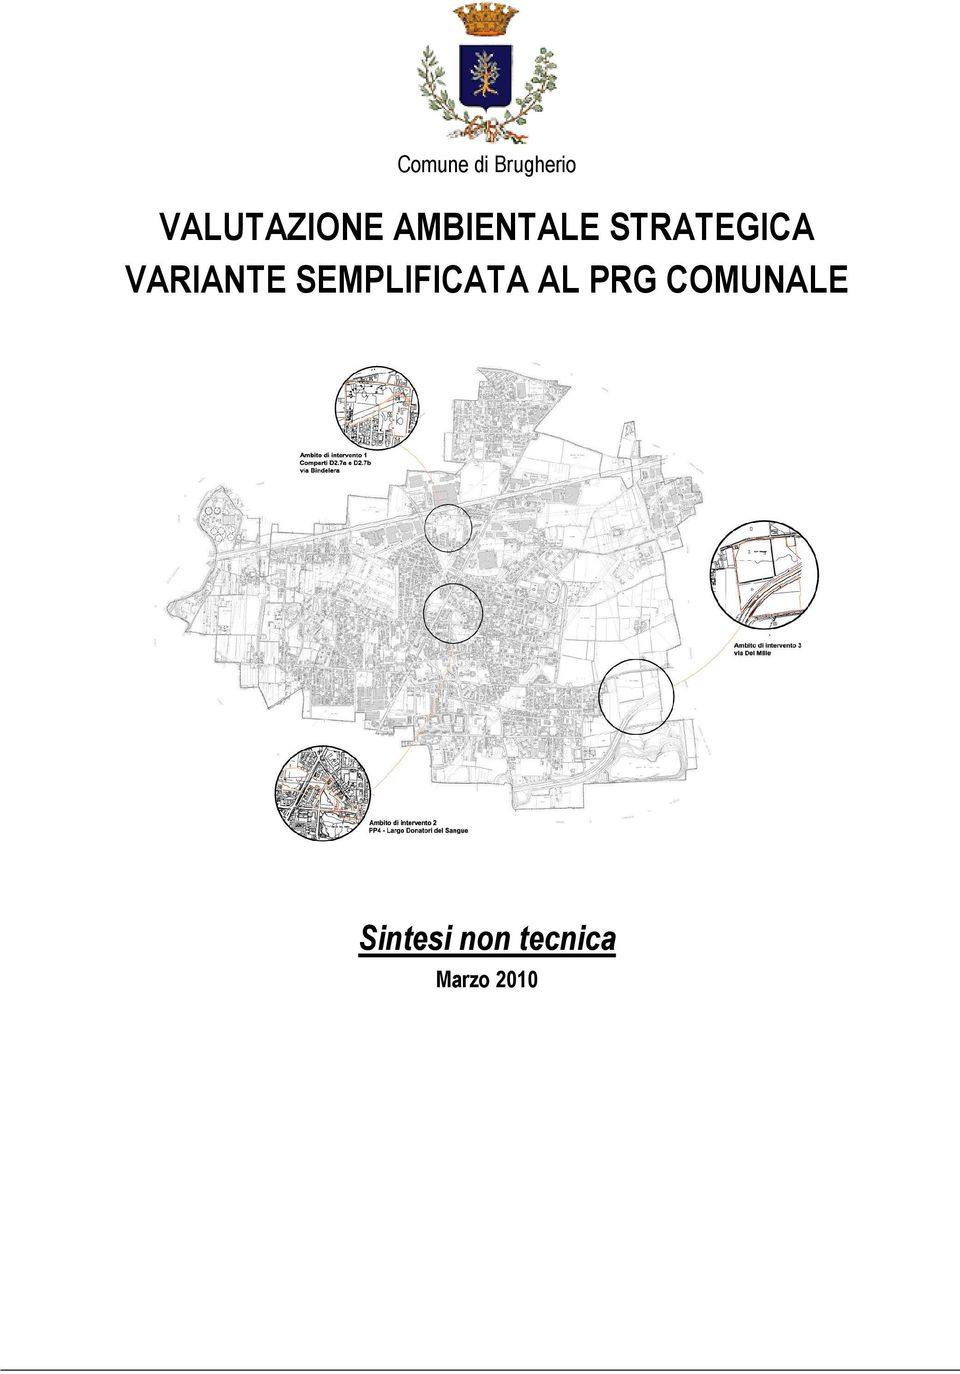 STRATEGICA VARIANTE